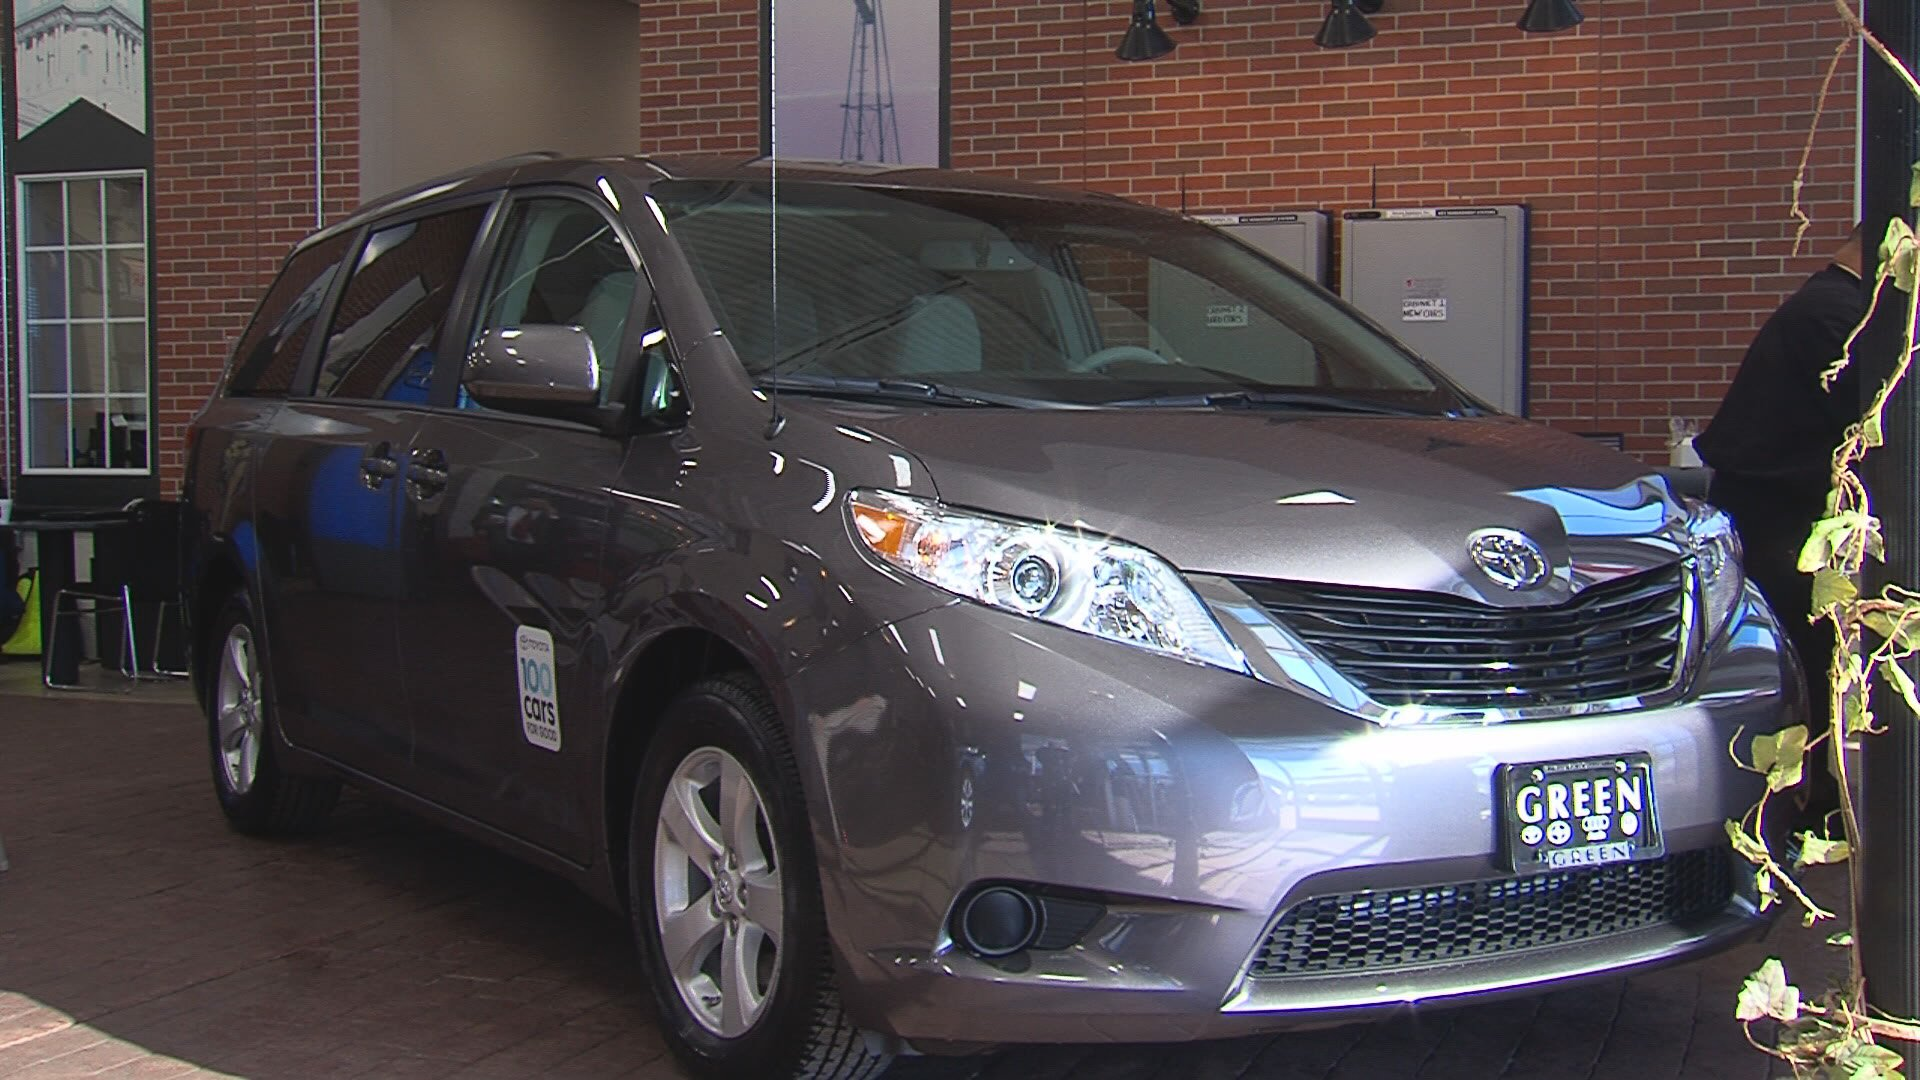 Springfield   Green Toyota Presented The Prairie Council Of Aging With A  New Toyota Sienna As Part Of The Toyota 100 Cars For Good Program.